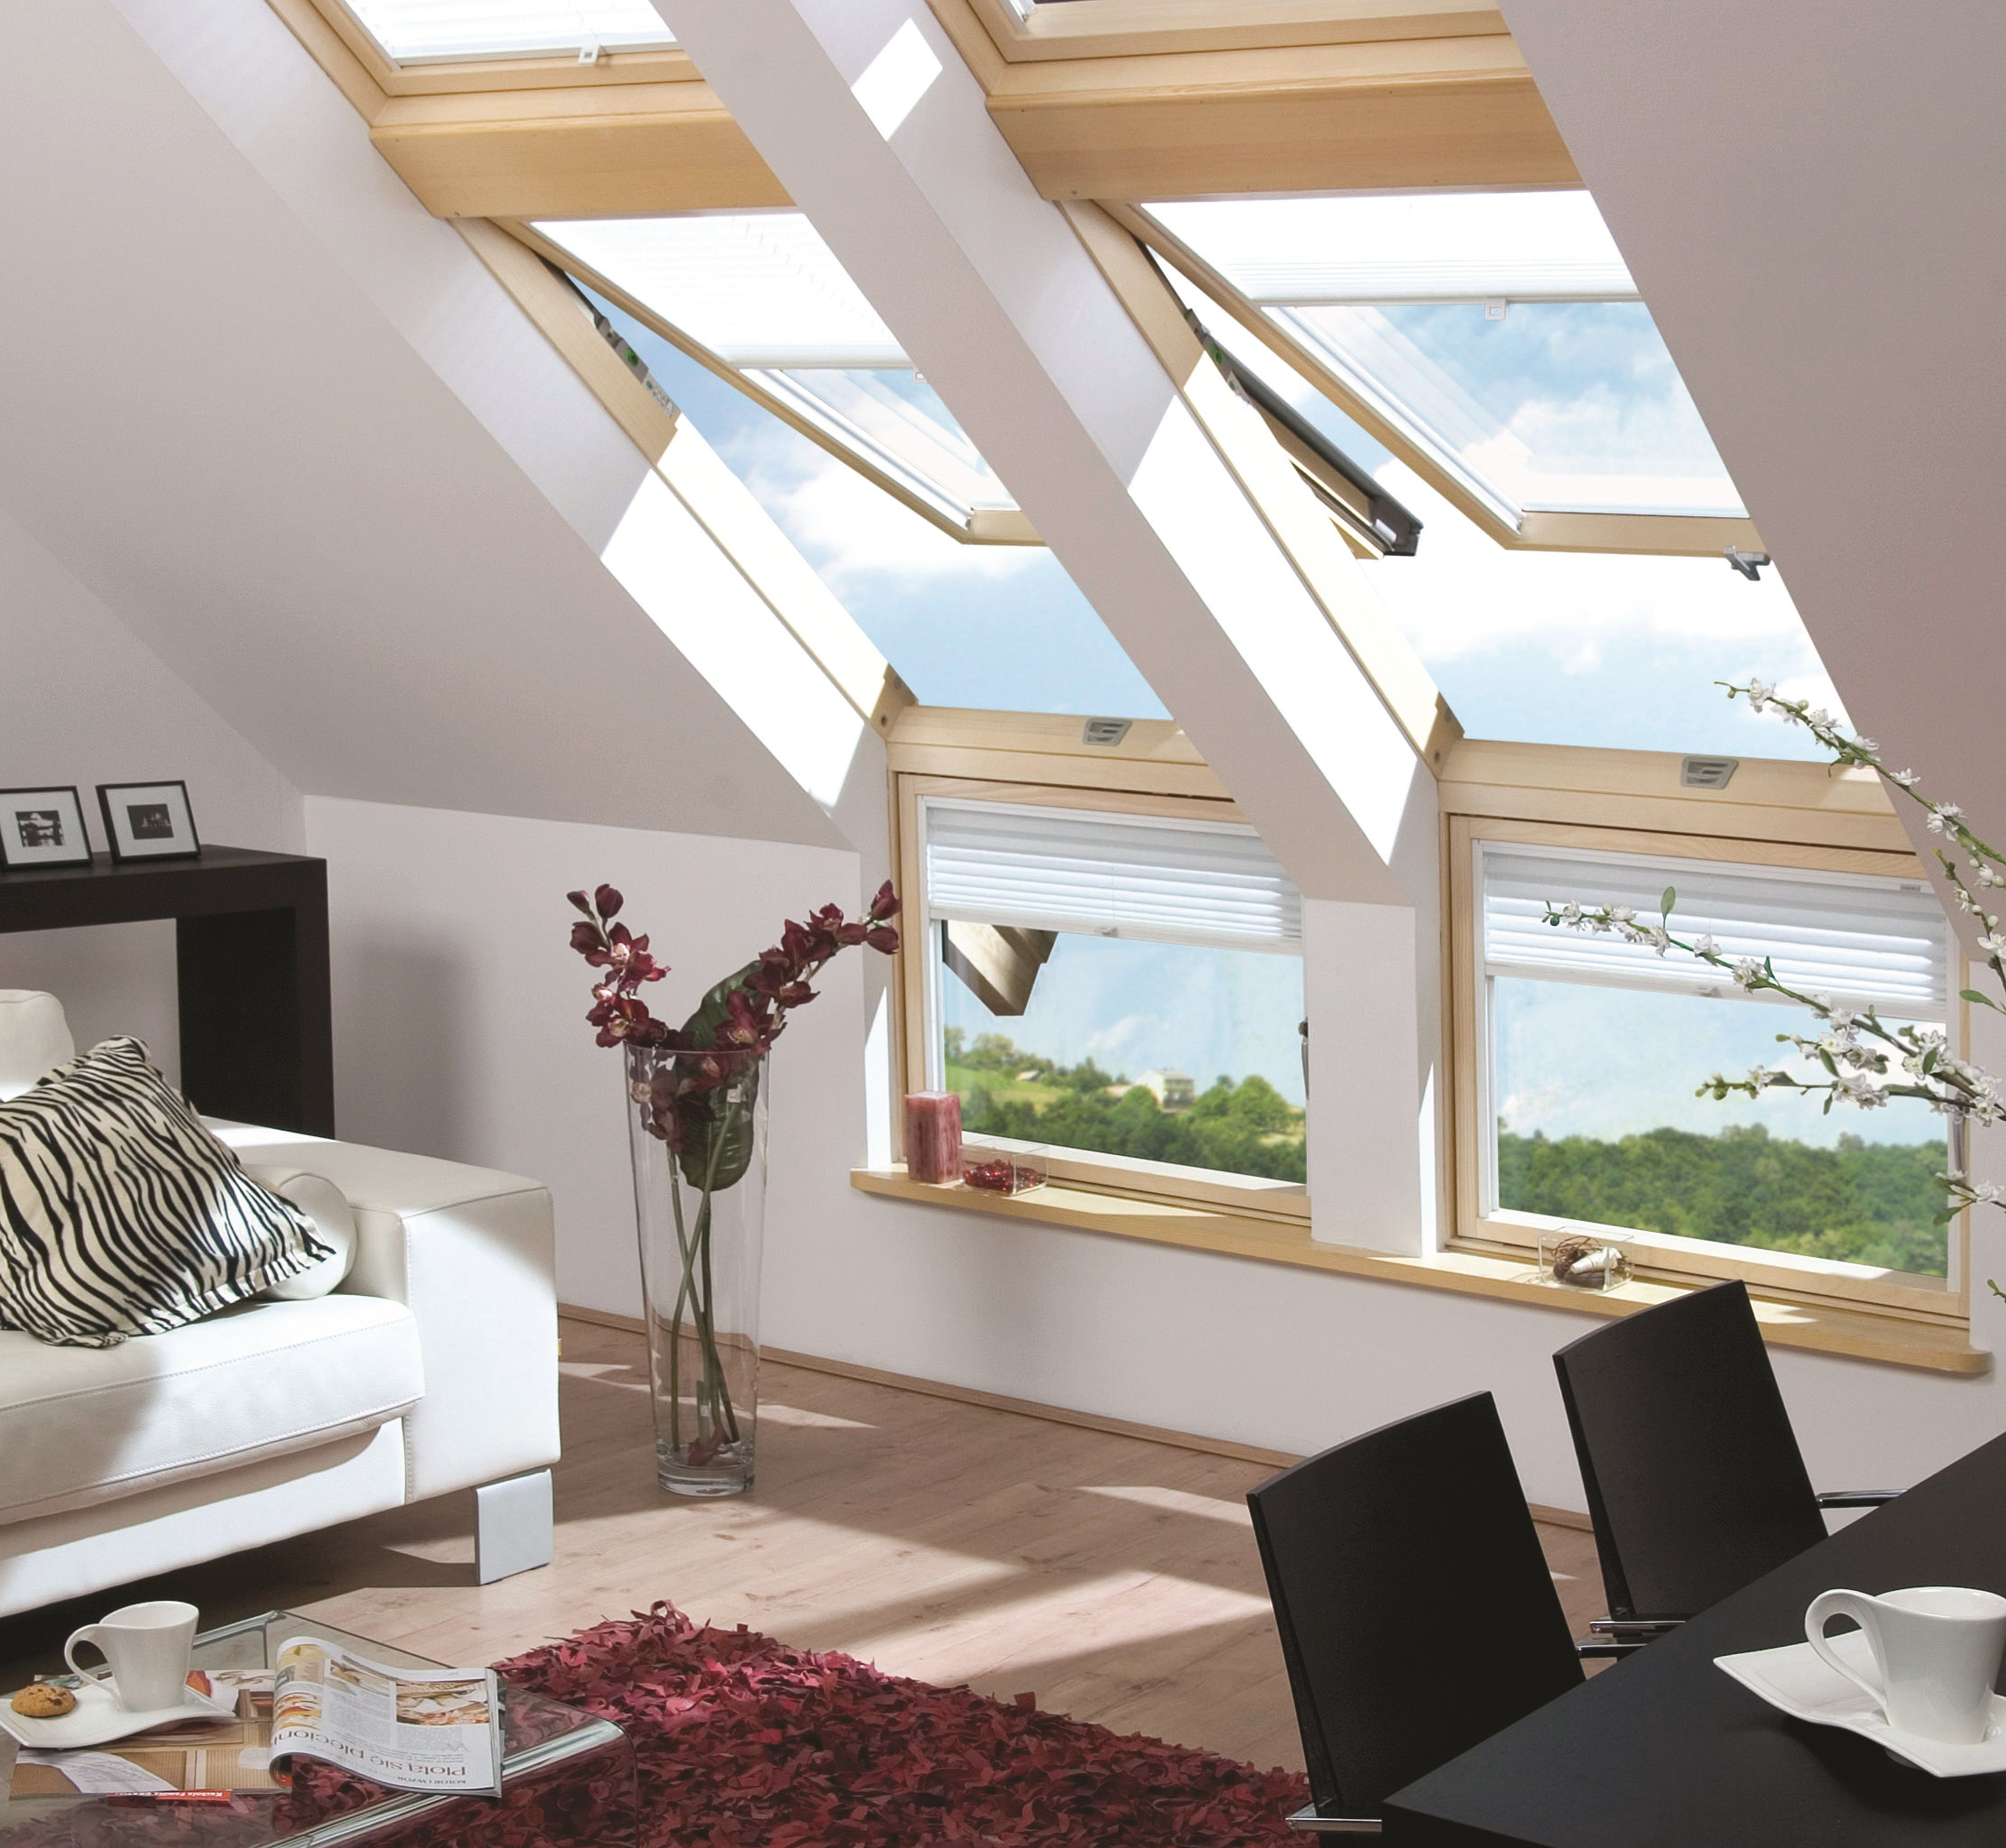 fakro design idea. Growing In Popularity Is The FAKRO L-shaped Window, Where A Pitched Roof Window Fakro Design Idea